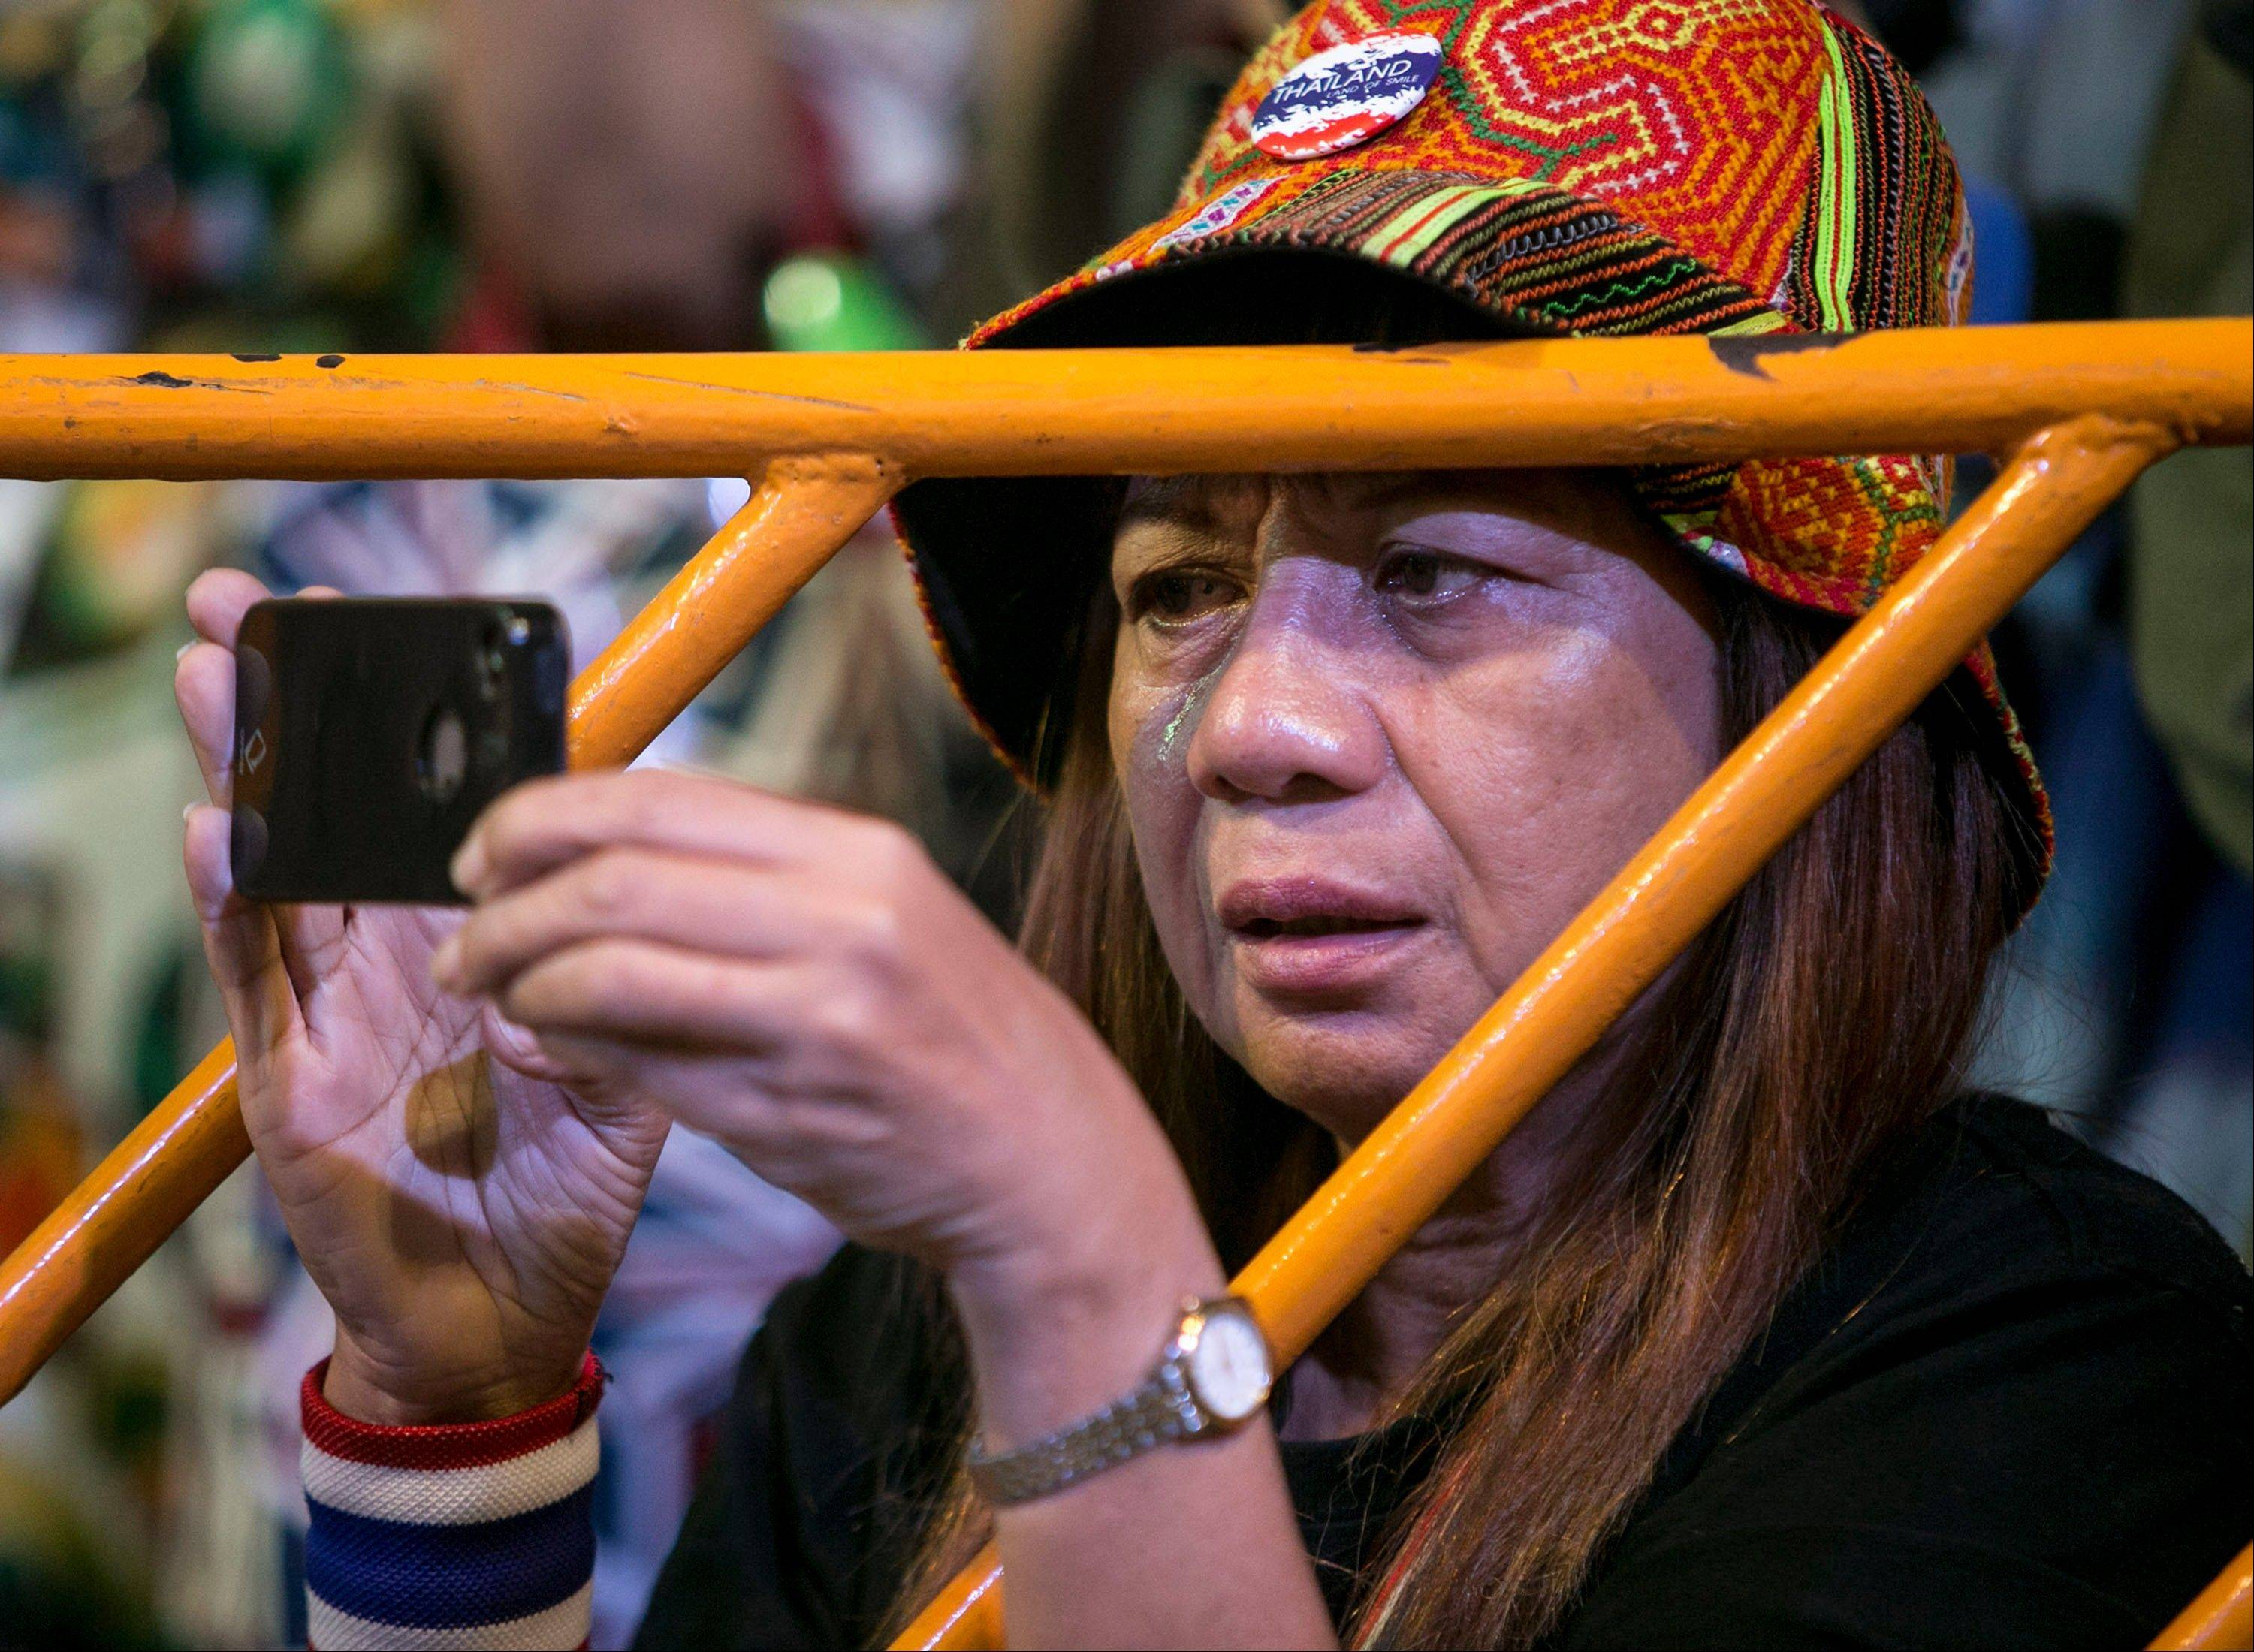 A Thai anti-government protester cries and takes picture during a condolence ceremony for Yuthana Ong-art, who was shot and killed on Friday night, in Bangkok, Thailand. Gunmen killed the anti-government activist and wounded two others in Thailand's capital on Saturday, while protesters elsewhere blocked candidates from registering for upcoming elections, deepening a political crisis that threatens to derail democracy in the Southeast Asian nation.